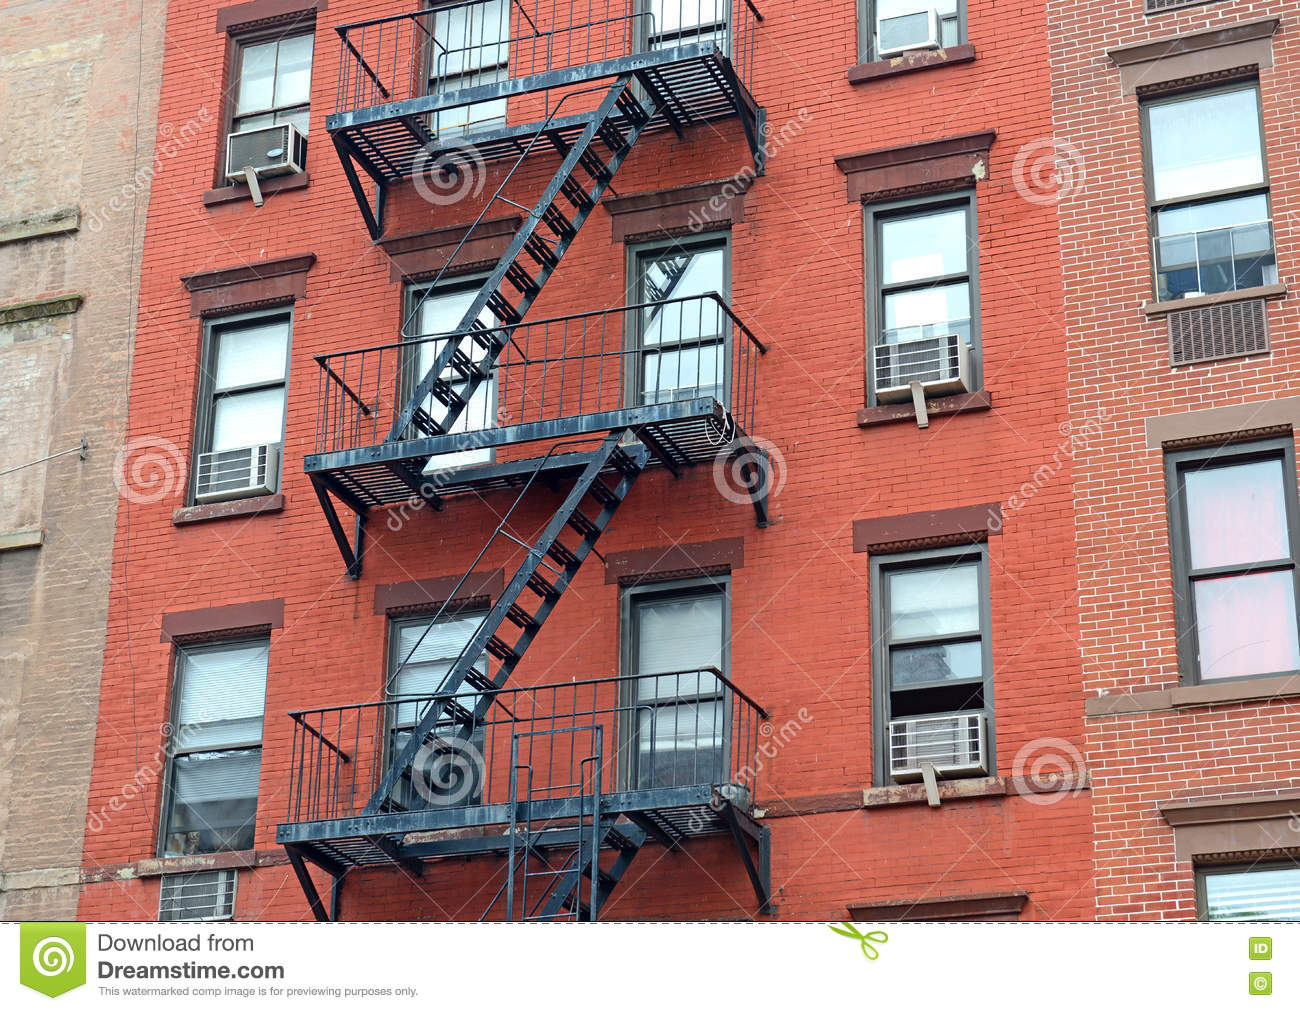 Fire Escape Stairway On Exterior Of Red Brick Walkup